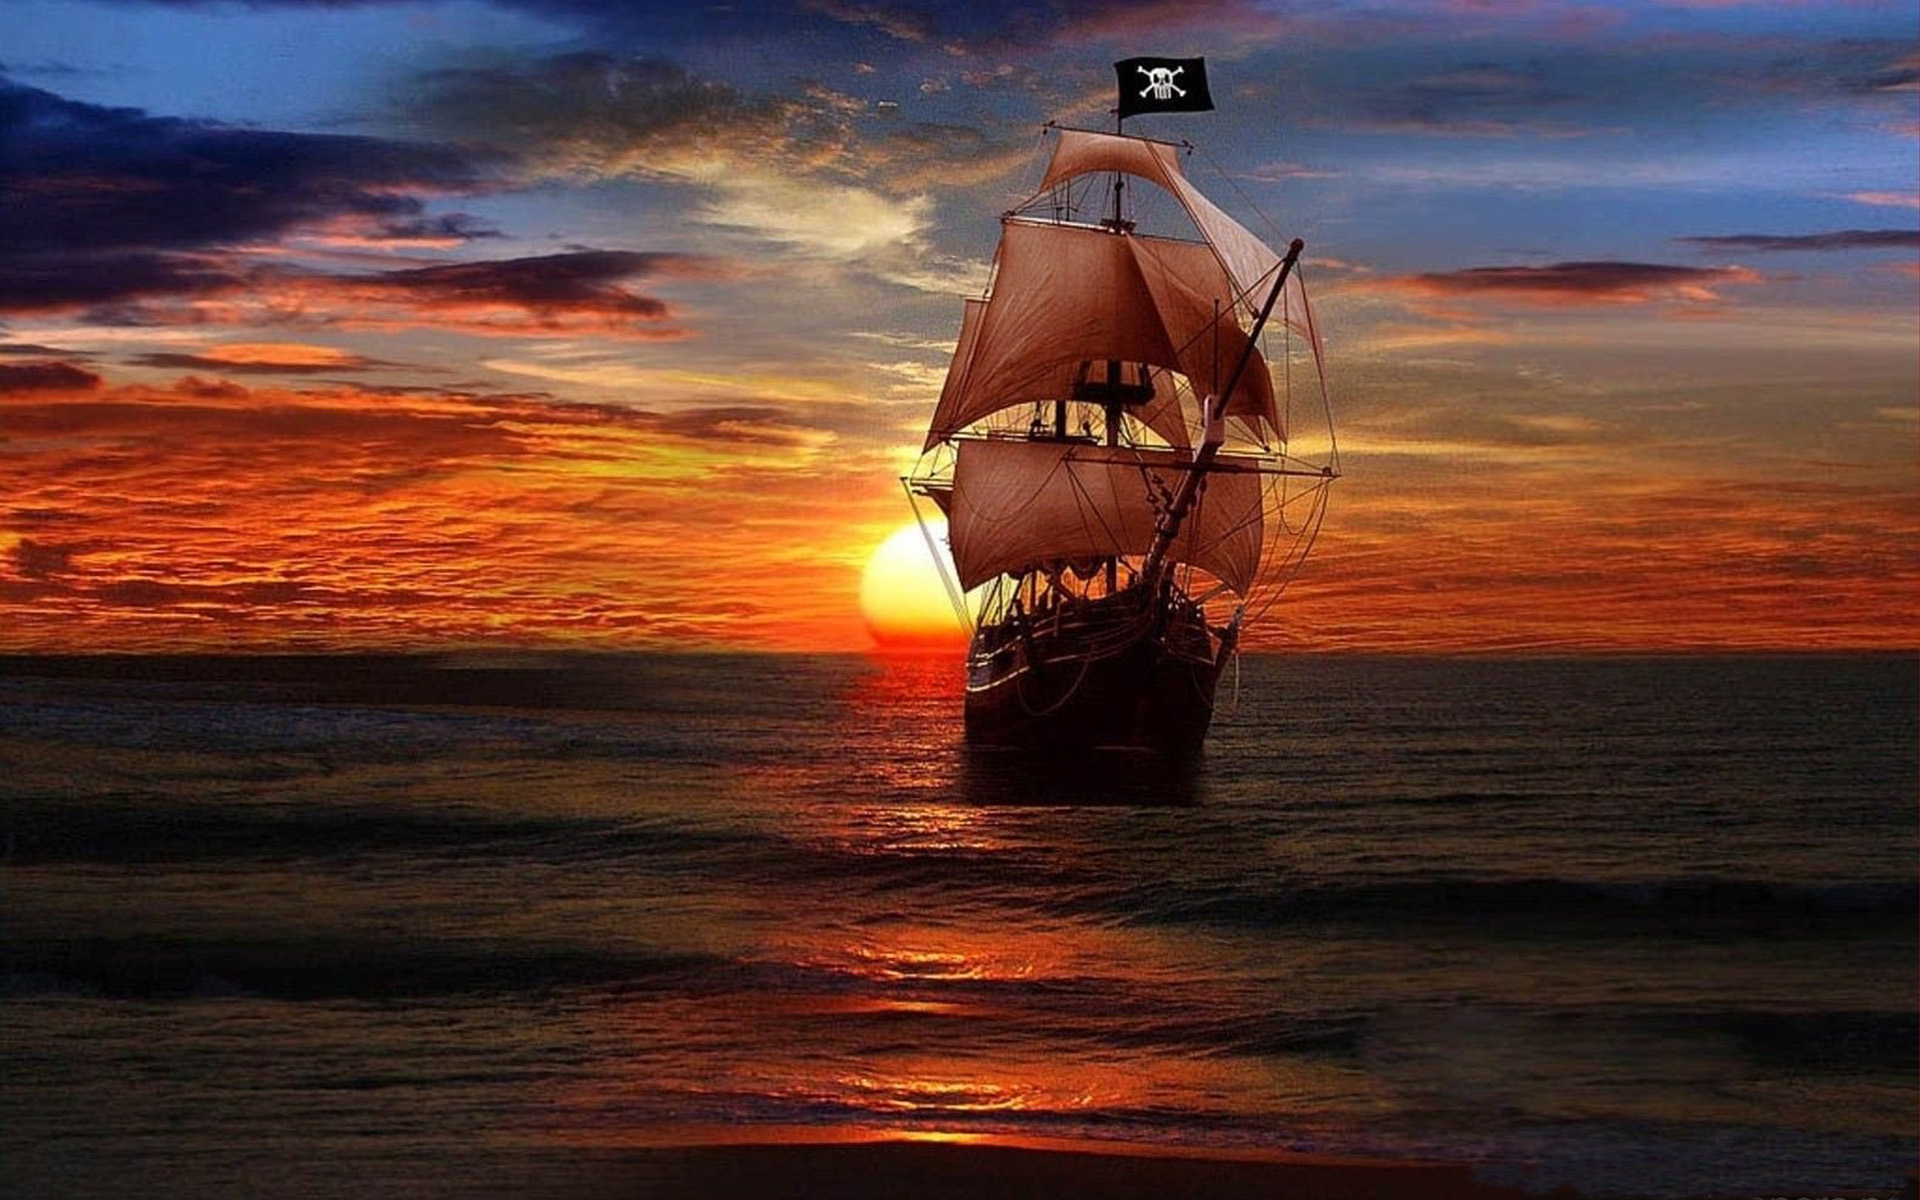 Free Wallpaper Old Cars Sunset And Pirate Ship Fantasy Art Desktop Wallpaper Hd